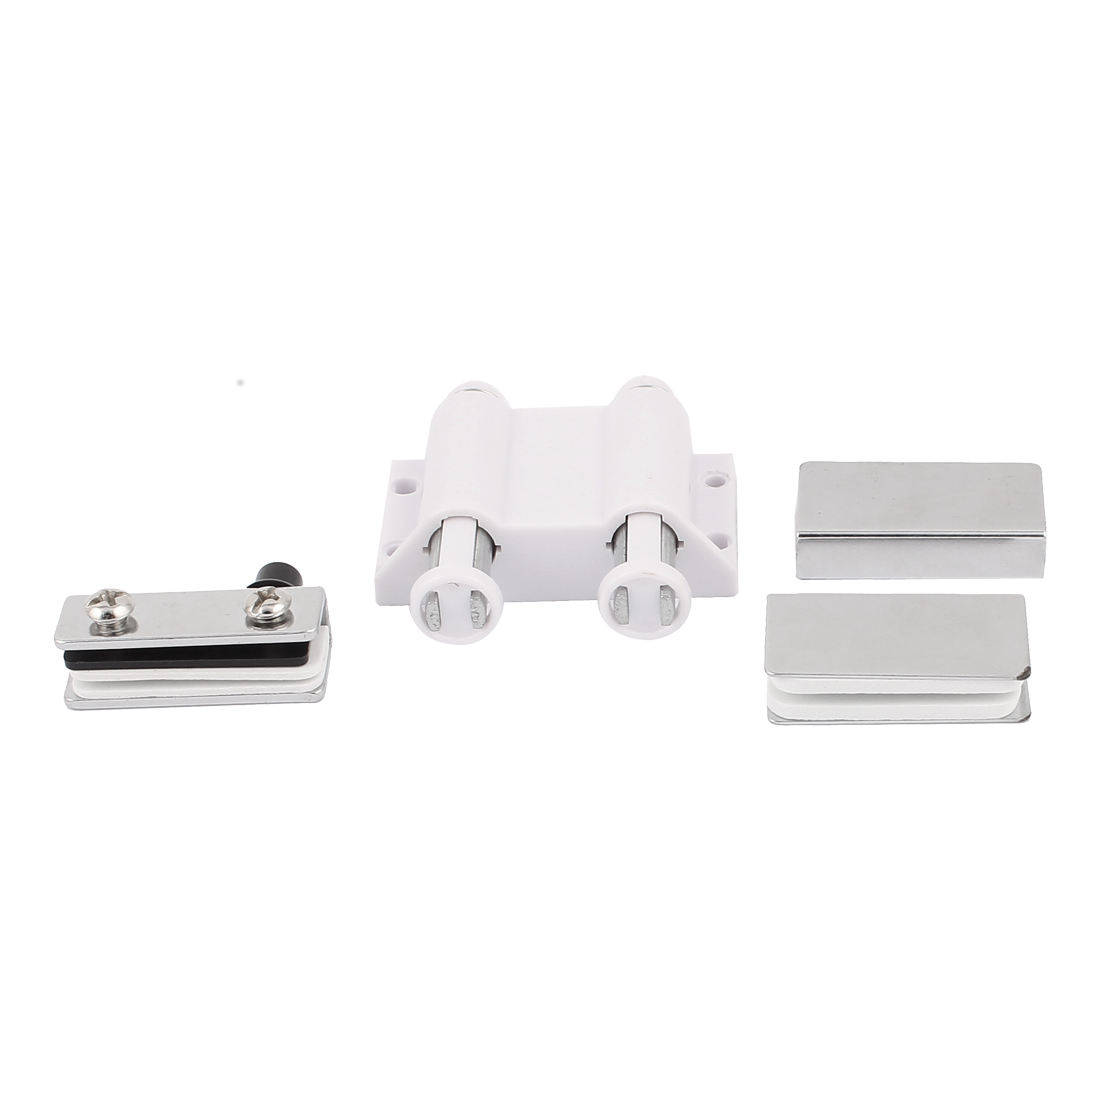 Door Glass Stopper Double Head Magnetic Catch Latch Set White 6mm Thickness